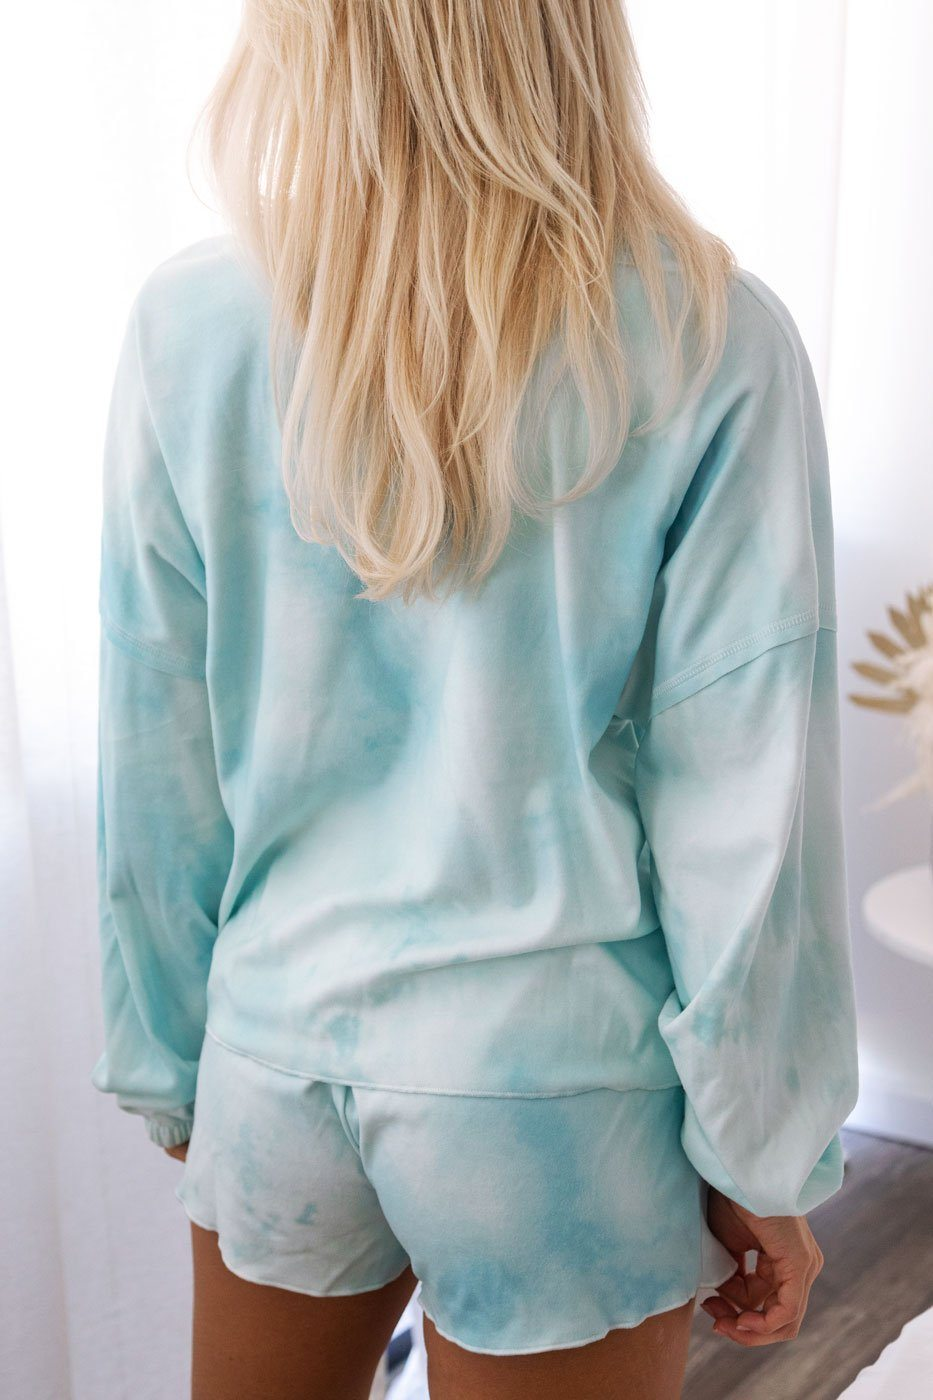 Aqua Tie-Dye Long Sleeve Top